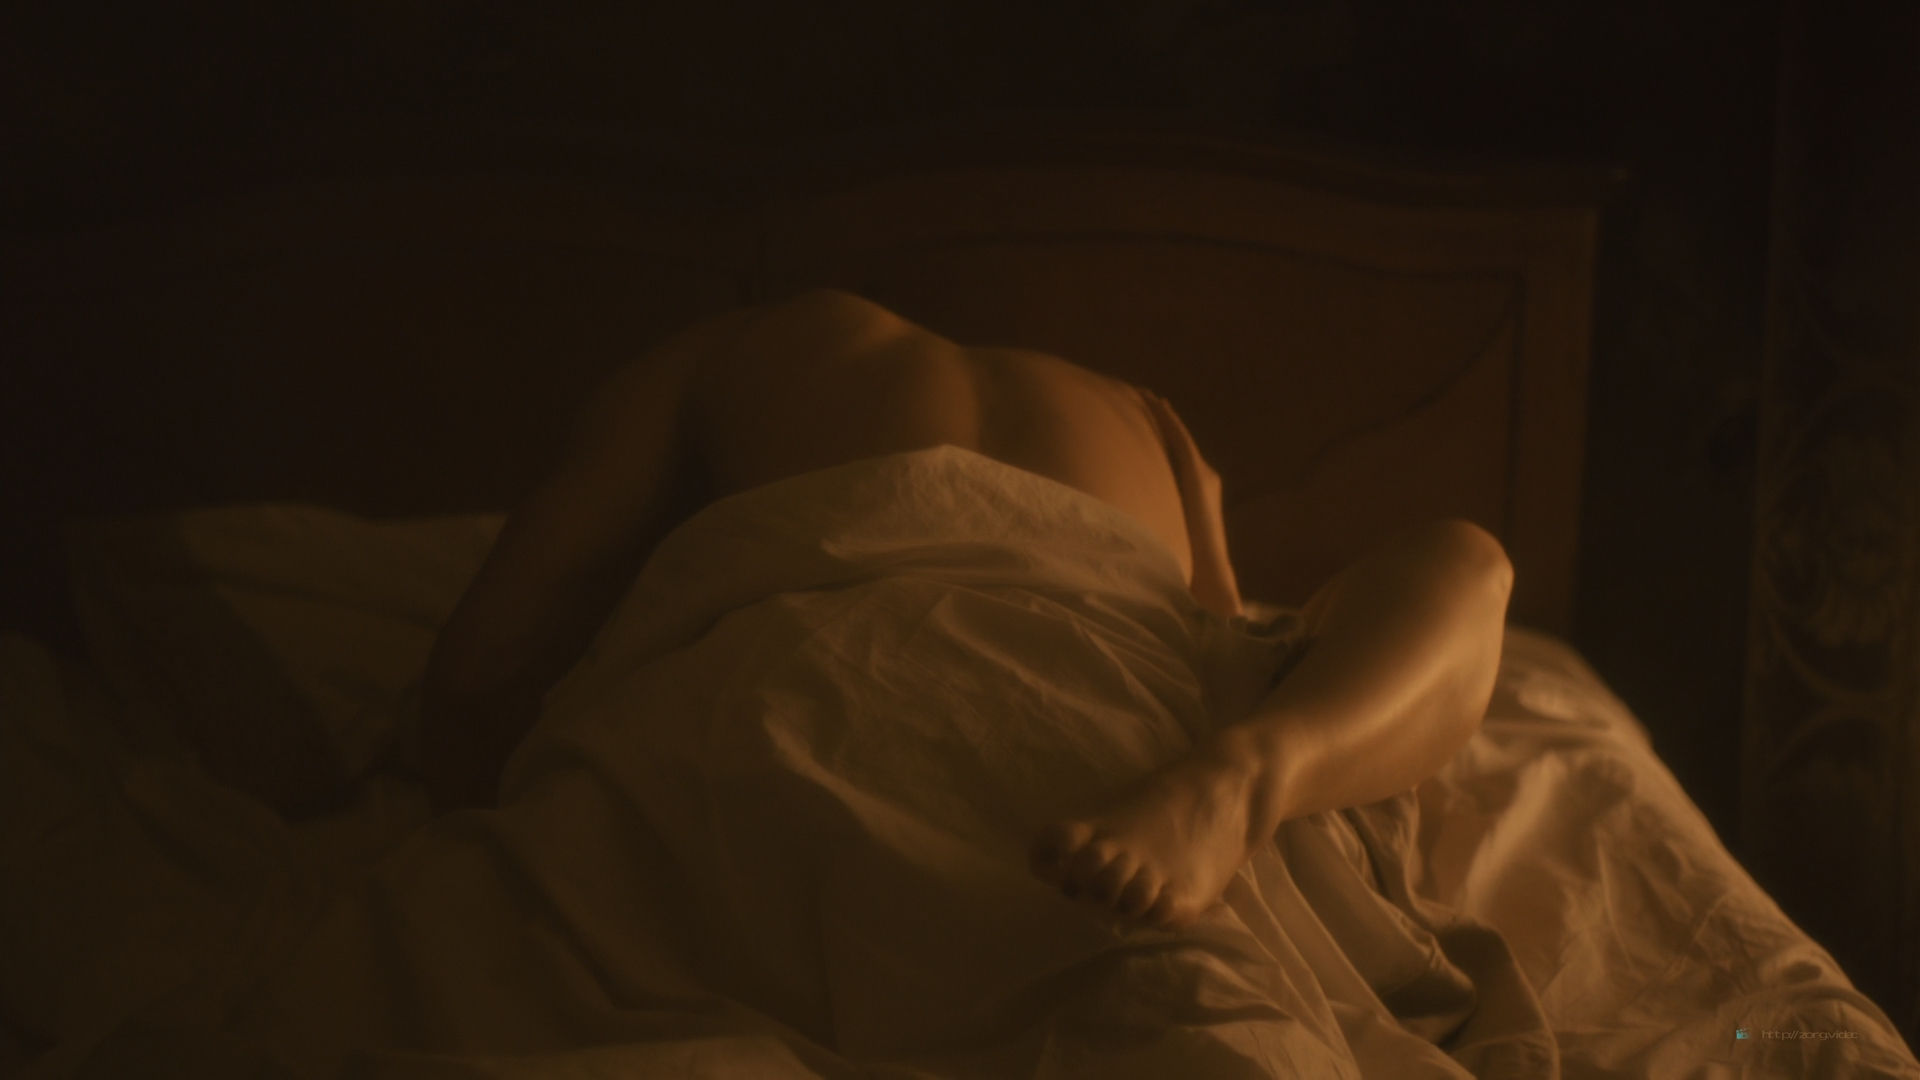 Evan Rachel Wood nude brief topless in sex scene - The Necessary Death of Charlie Countryman (2013) hd1080p BluRay (8)